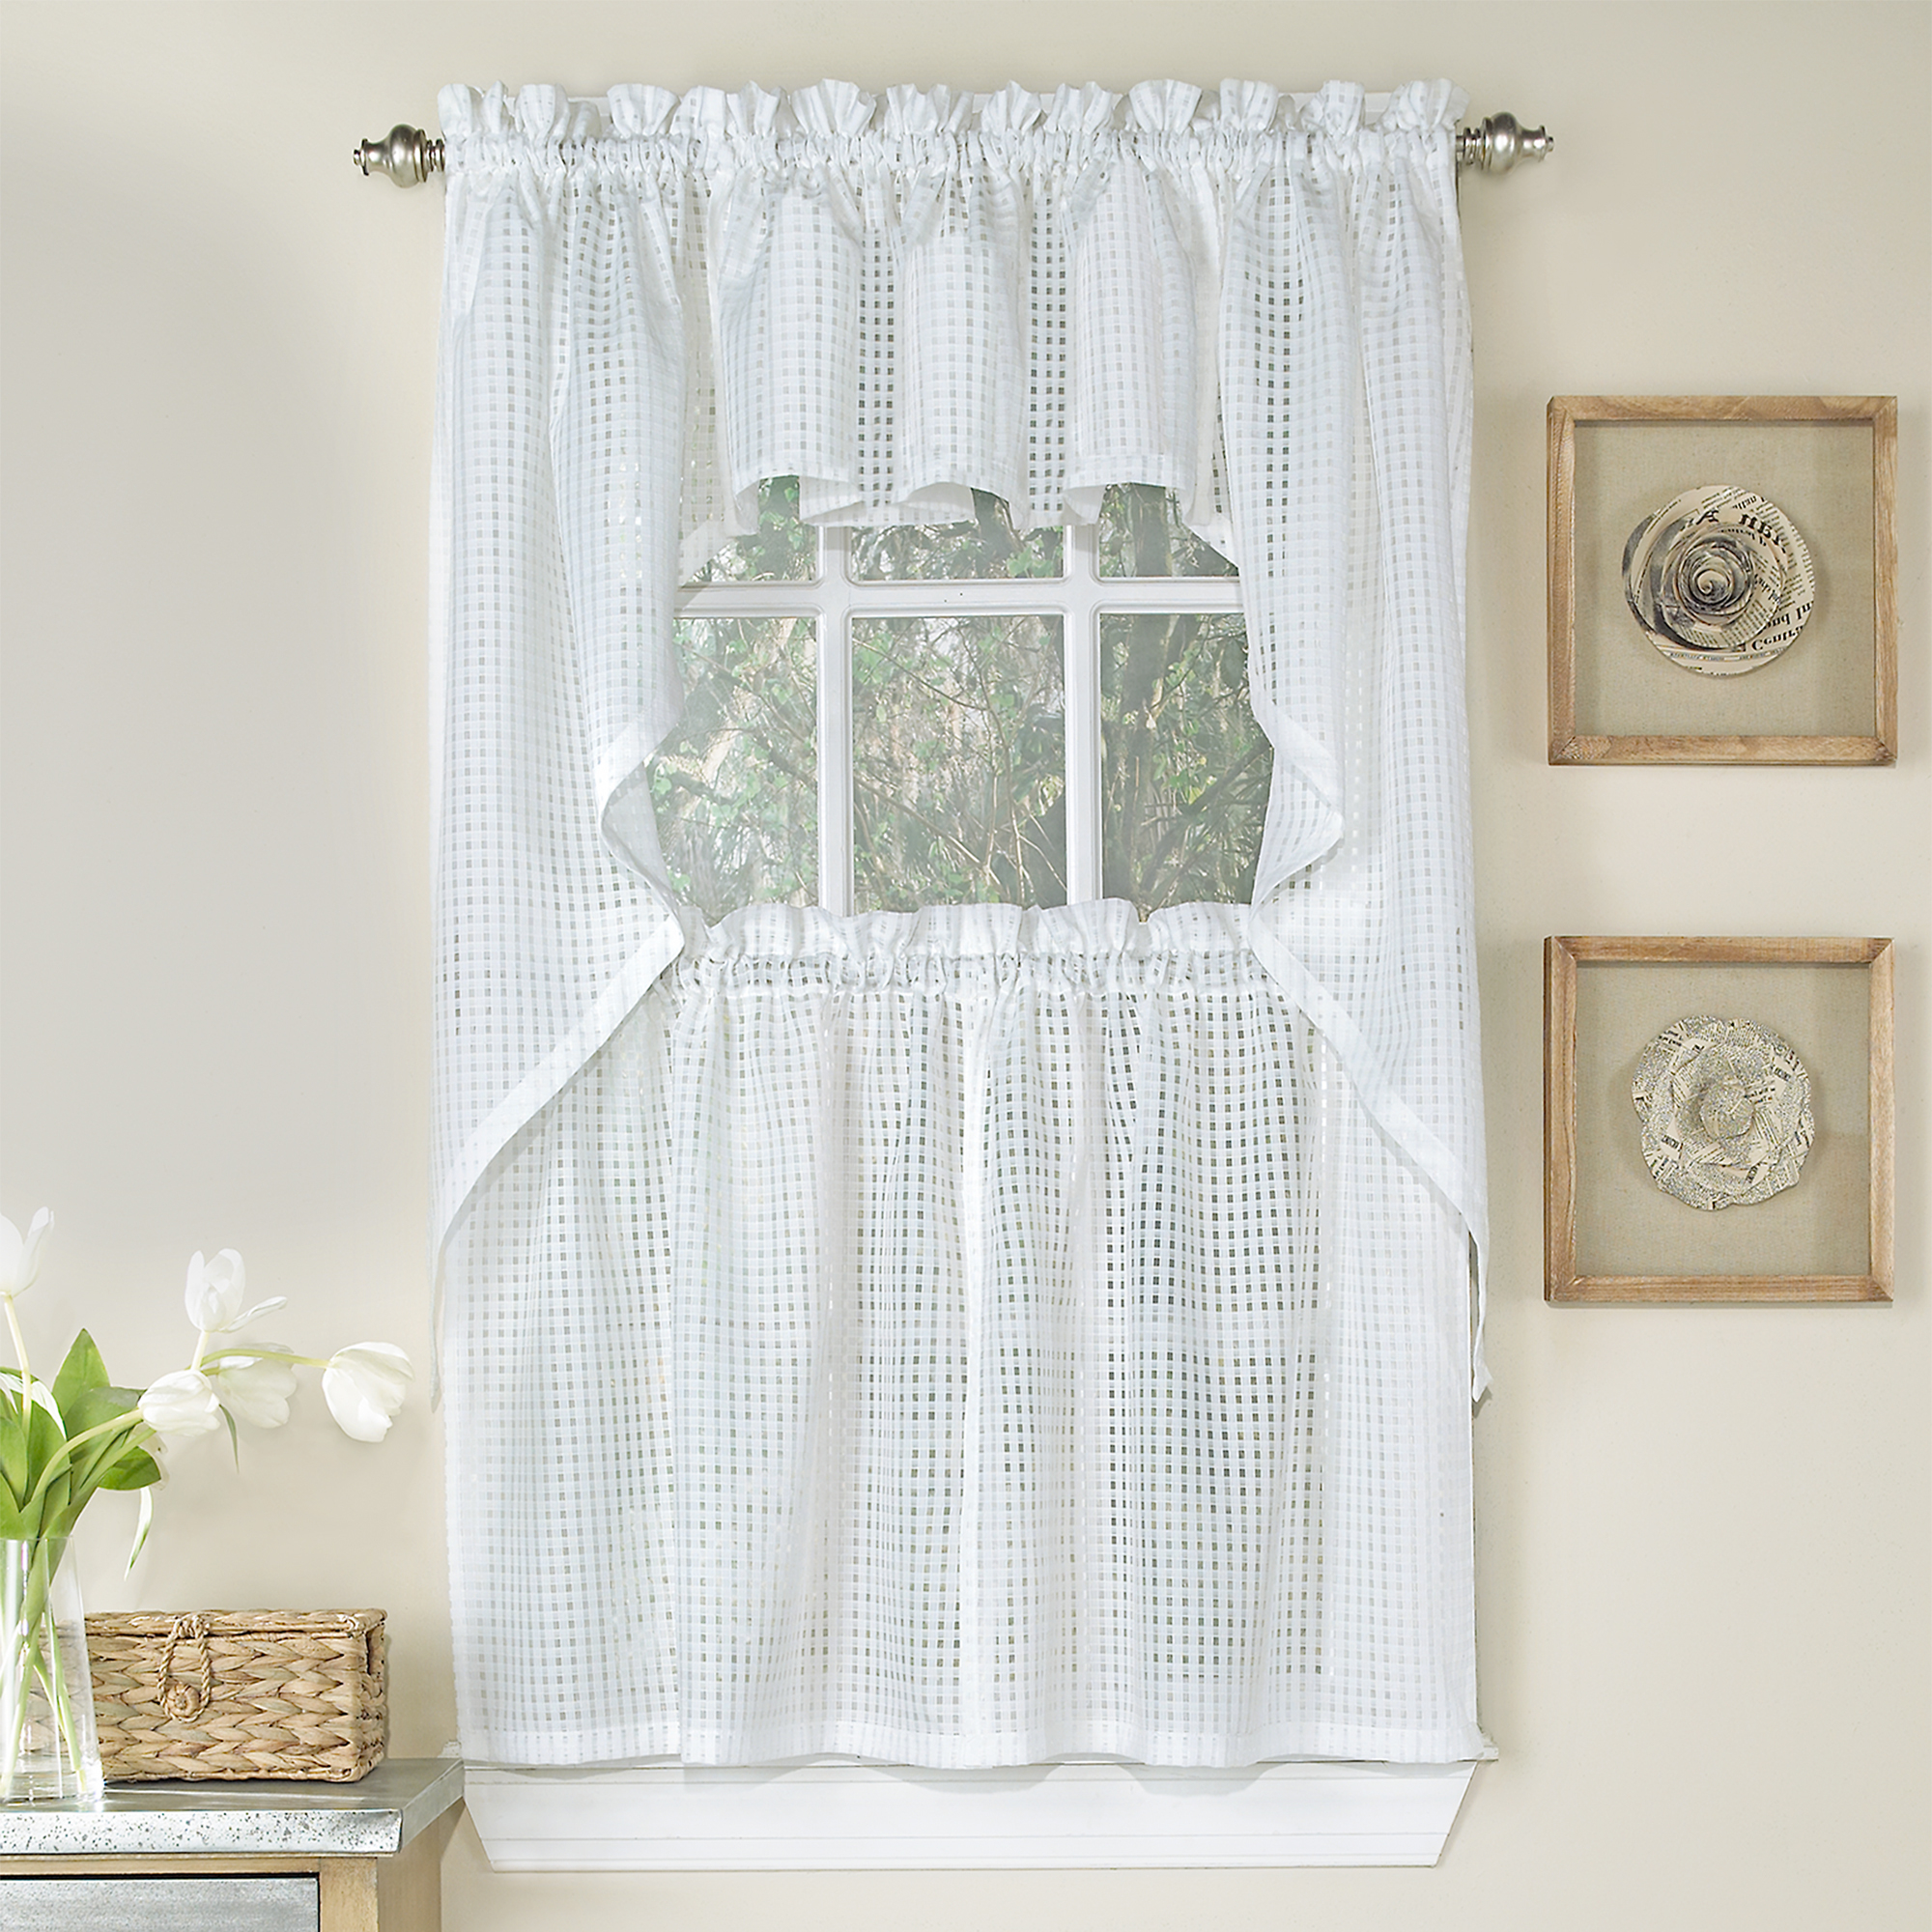 Preferred Semi Sheer Rod Pocket Kitchen Curtain Valance And Tiers Sets With Details About Micro Check 2 Tone White Semi Sheer Window Curtain Tiers, Valance, Or Swag (View 9 of 20)